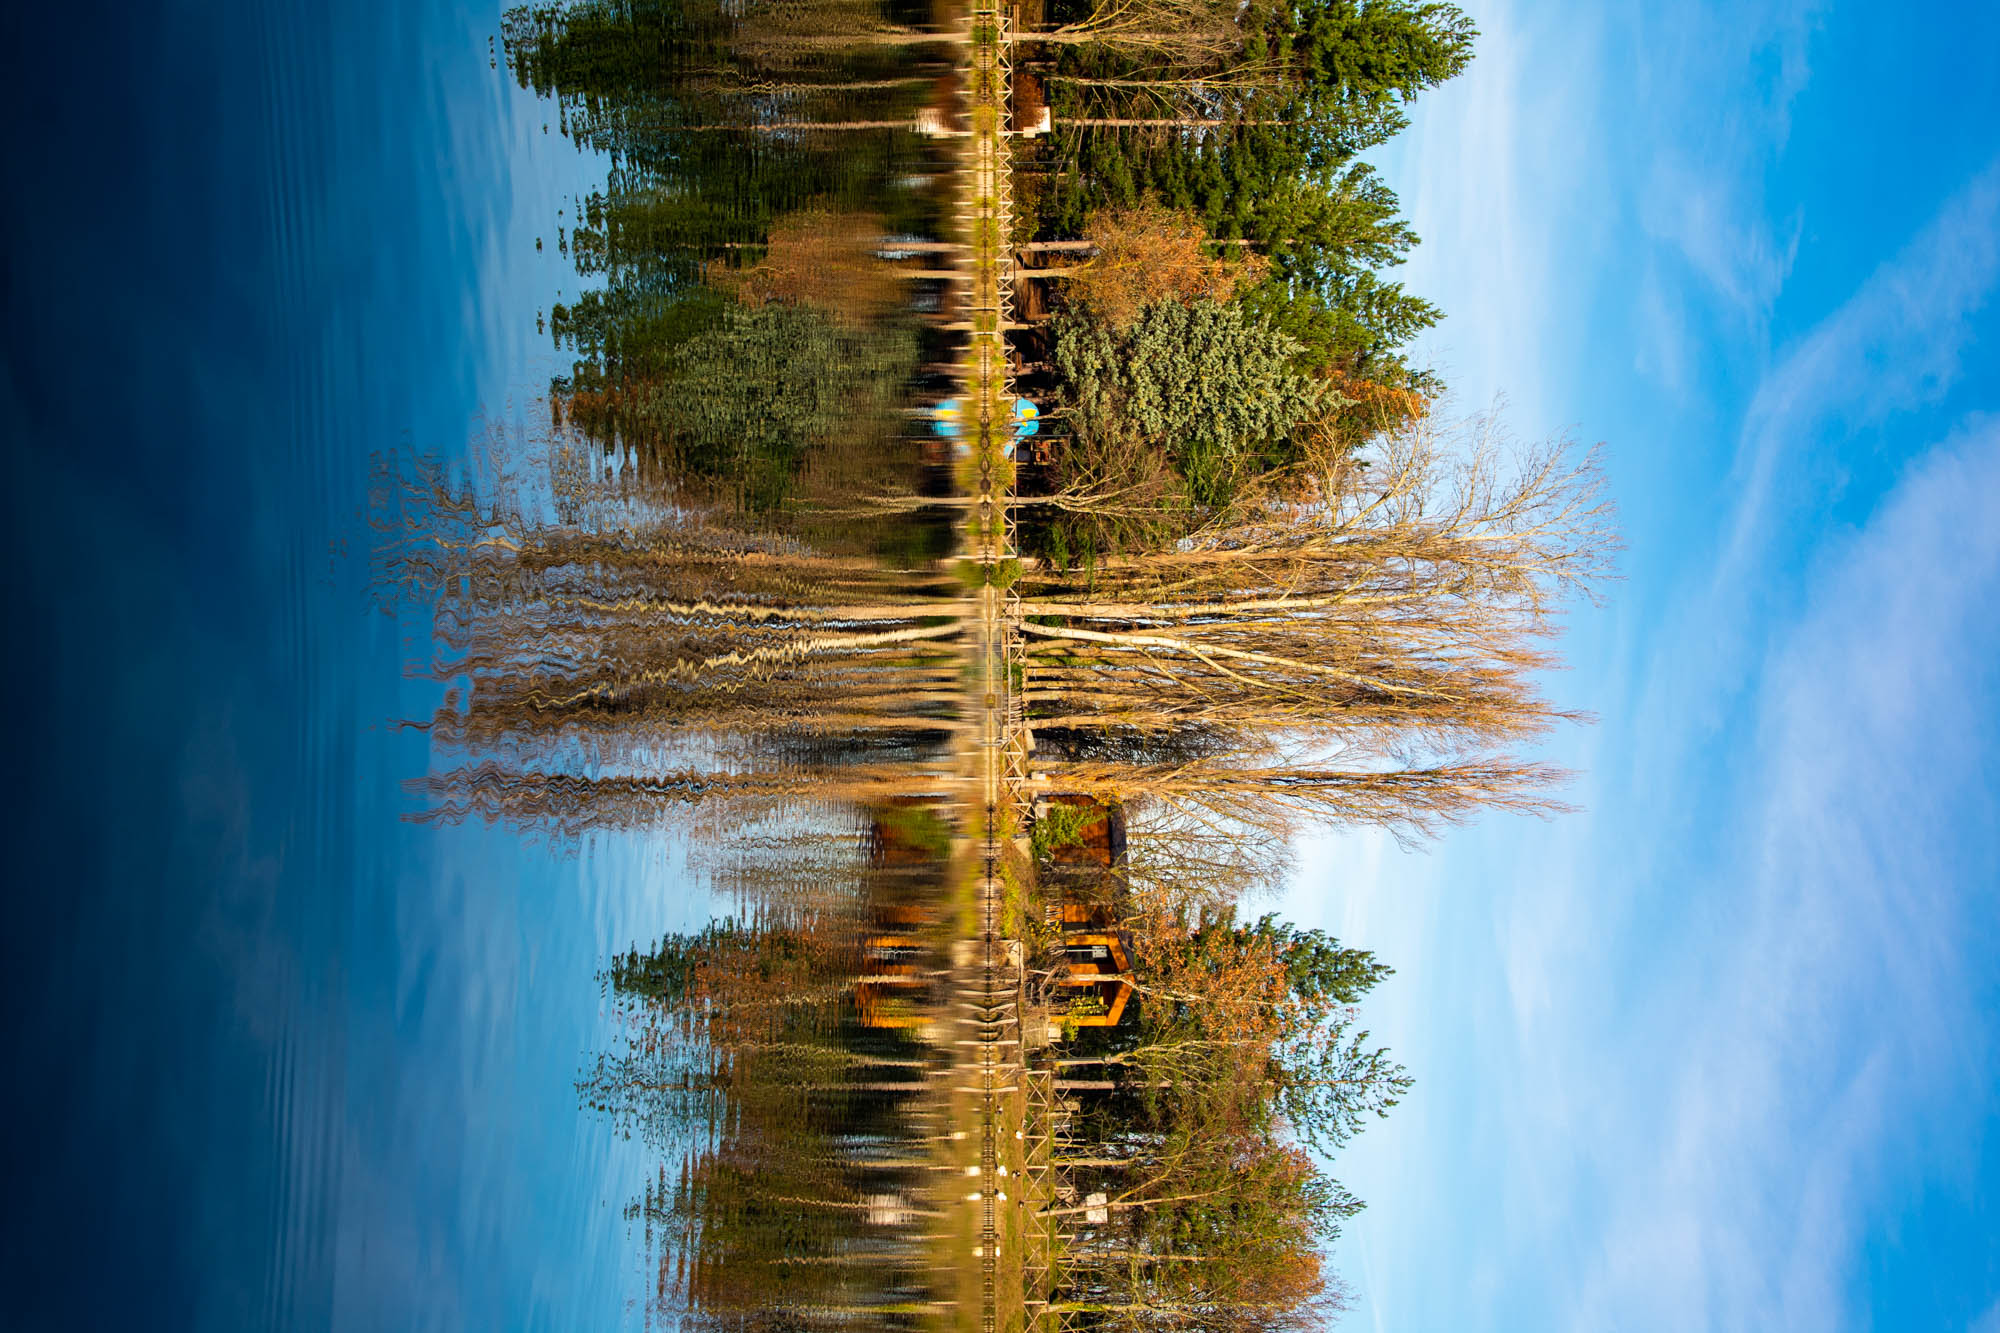 Reflections on the Lake of Andreuccio-Pennabilli (RN)...